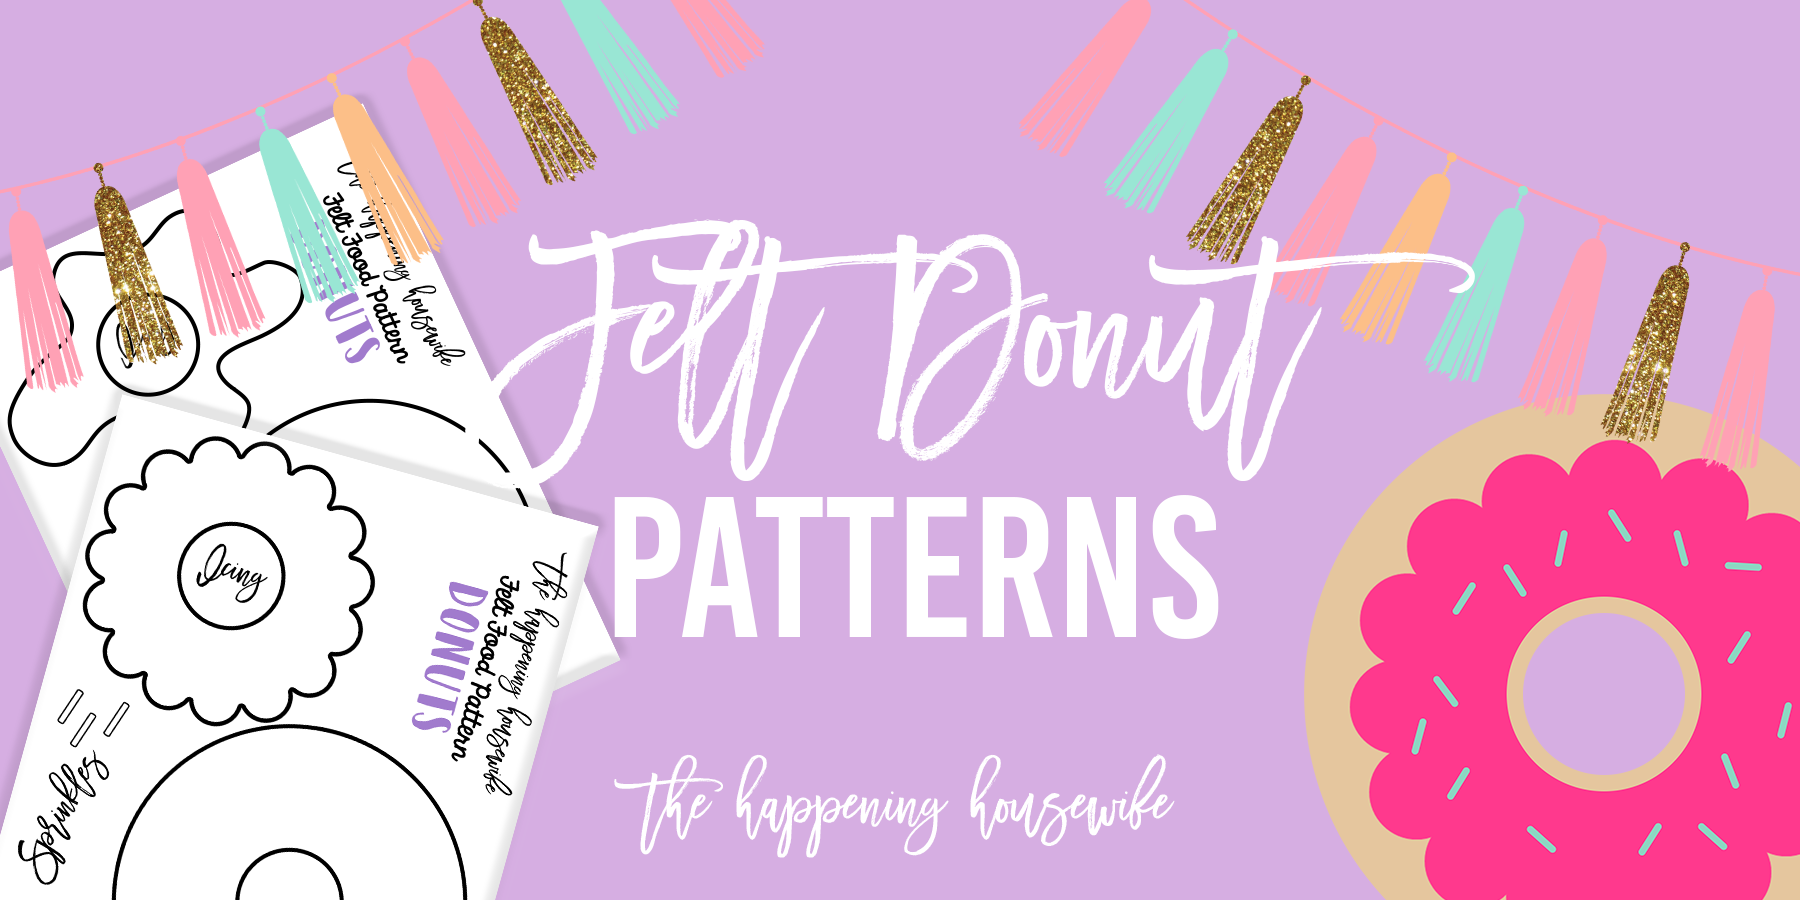 felt donut patterns header